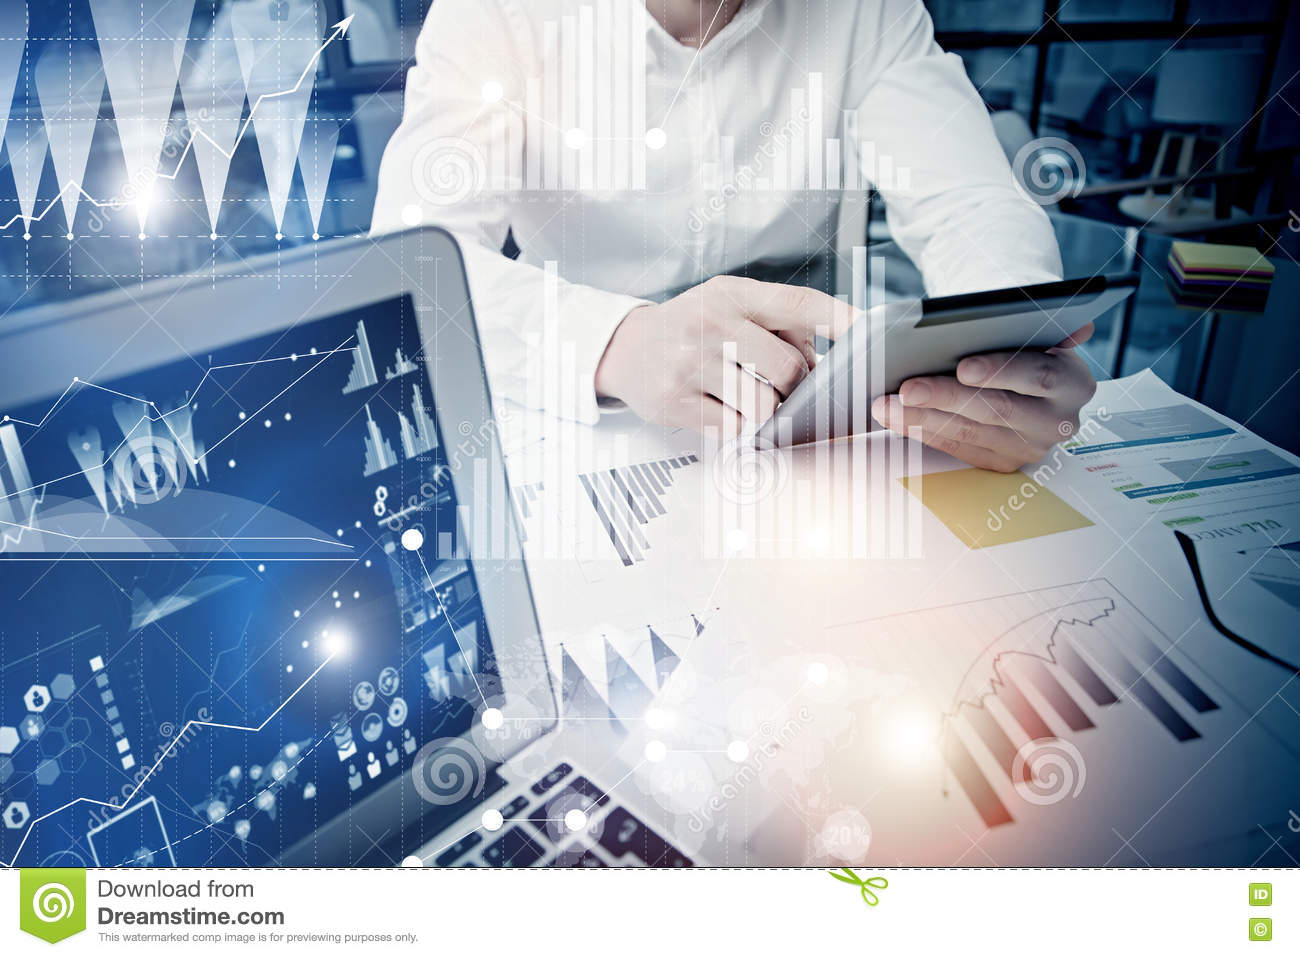 Concept businessman touching modern tablet screen.Trader manager working new private banking project office.Using